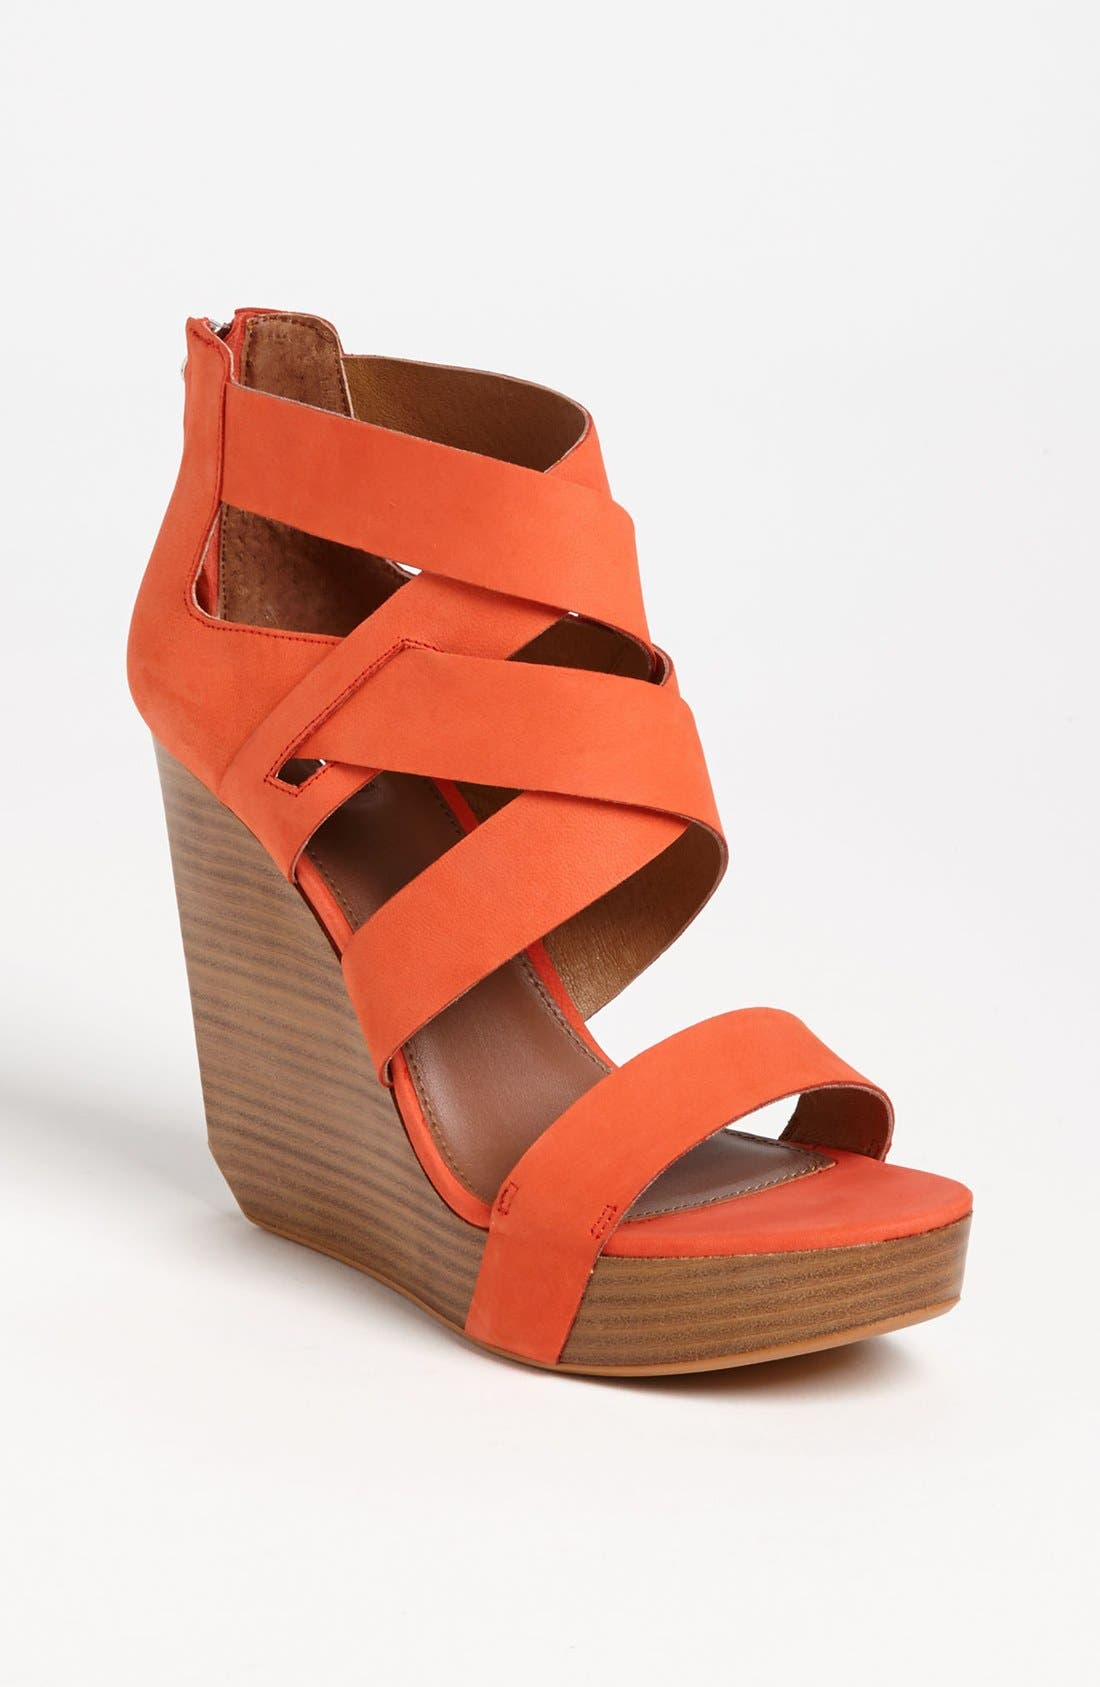 Alternate Image 1 Selected - Matiko 'Crisscross' Wedge Sandal